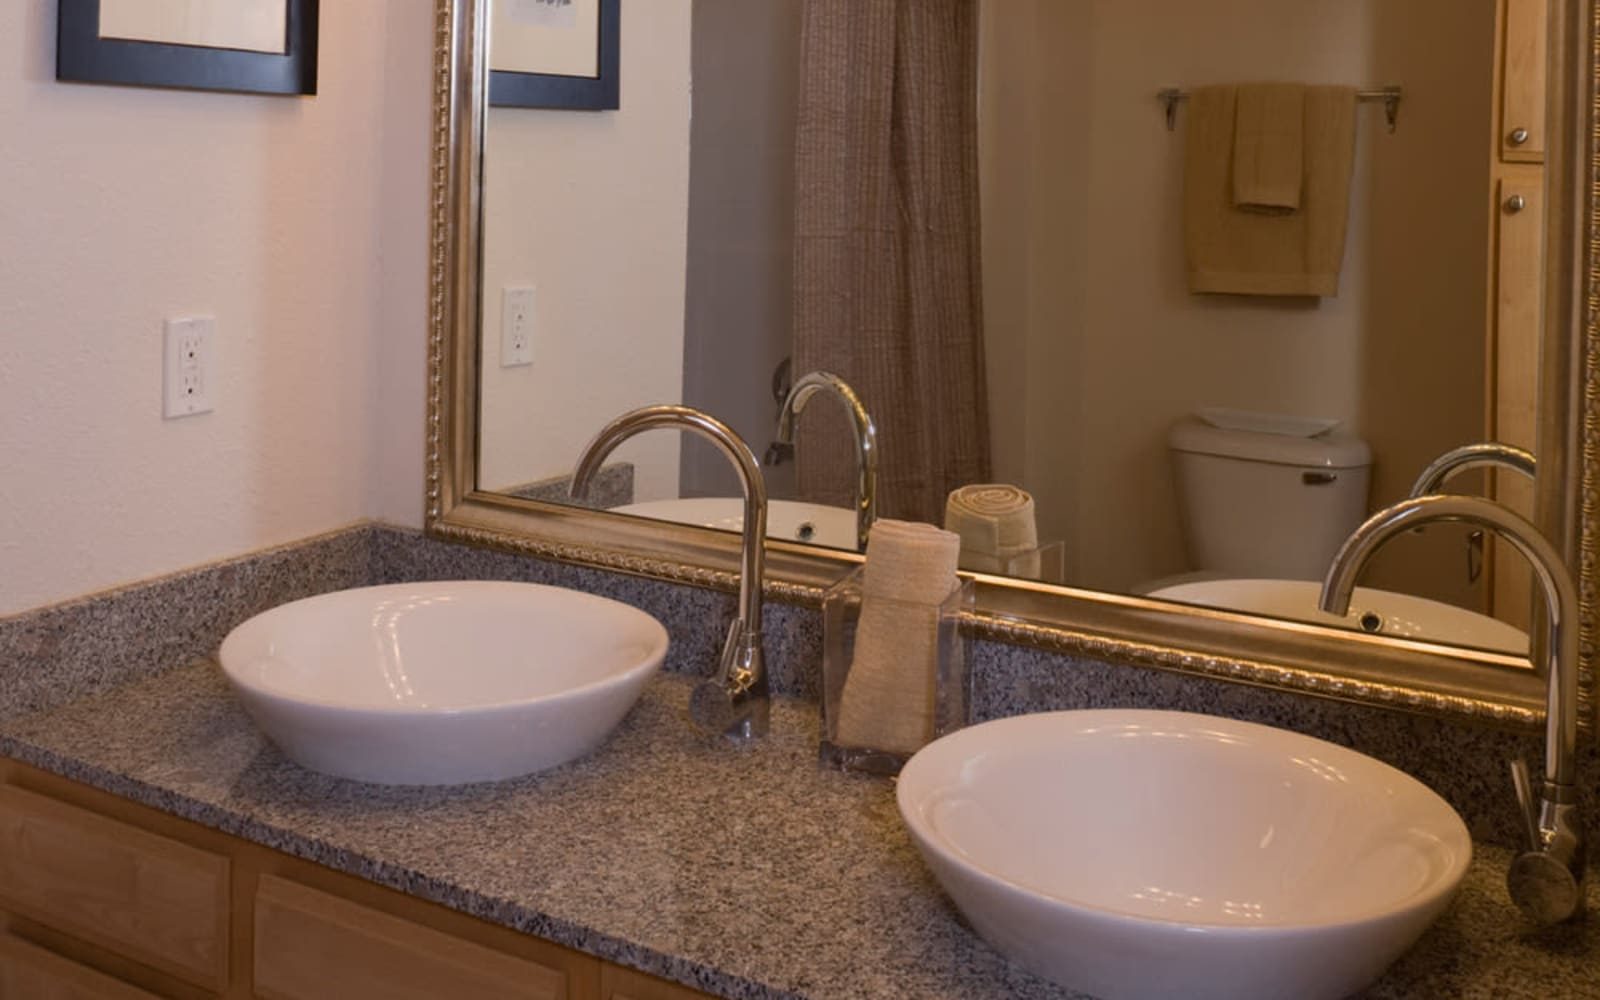 Vessel bowl sinks at Plantation Crossing in Lafayette, Louisiana.